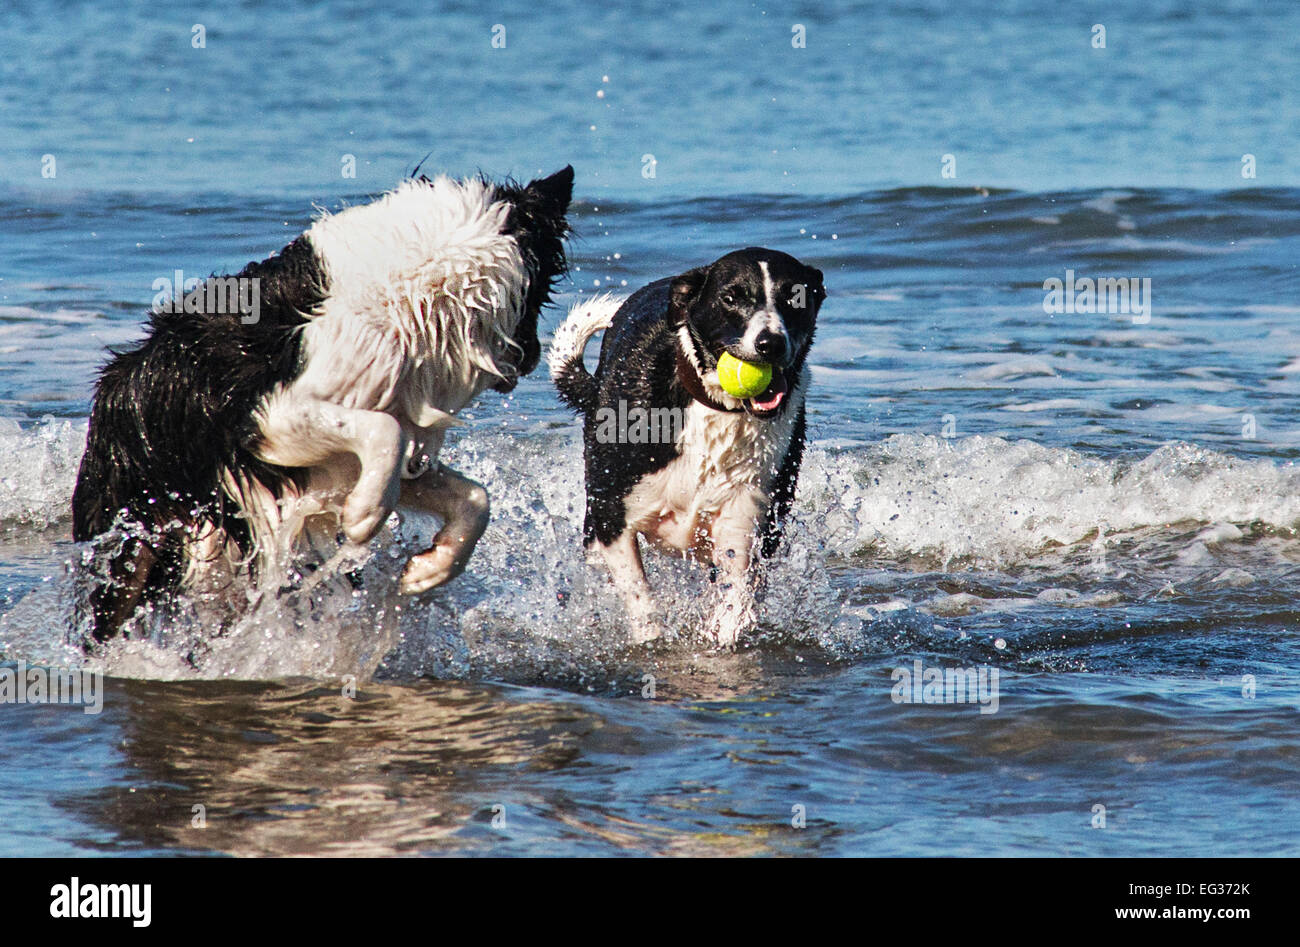 That's my ball! Two dogs fight over a ball in the sea - Stock Image